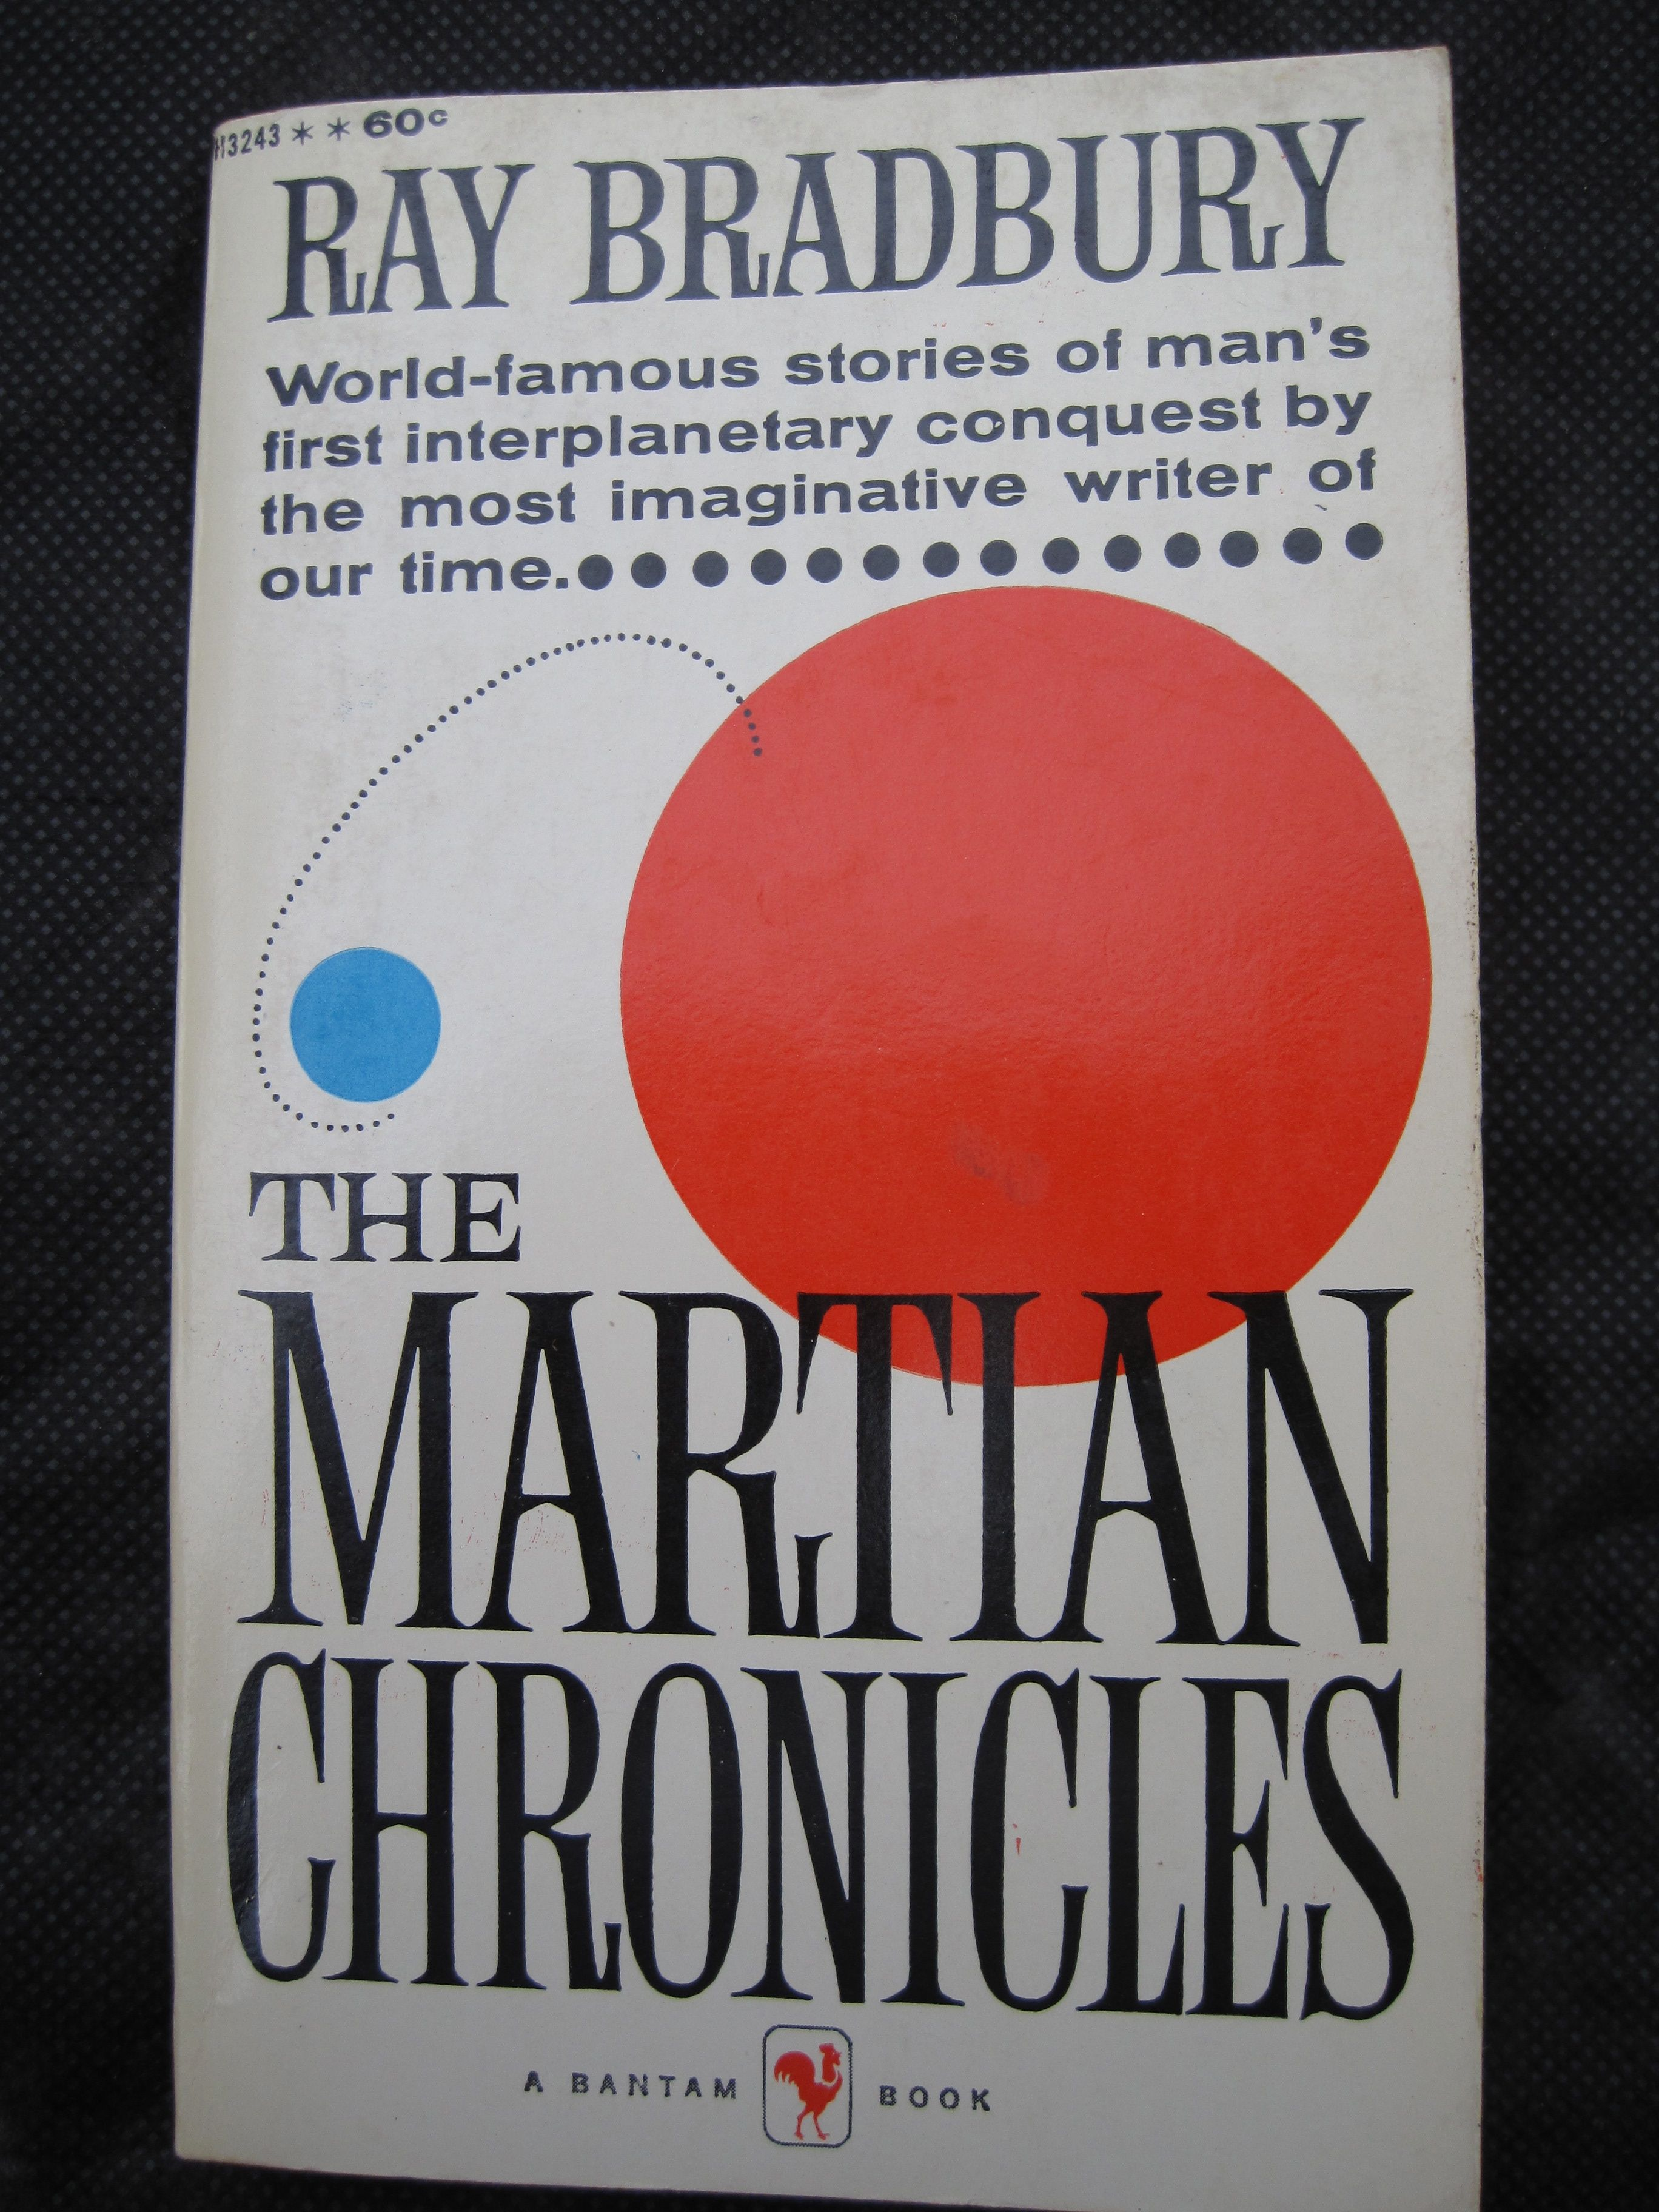 the martian chronicles by ray bradbury essay